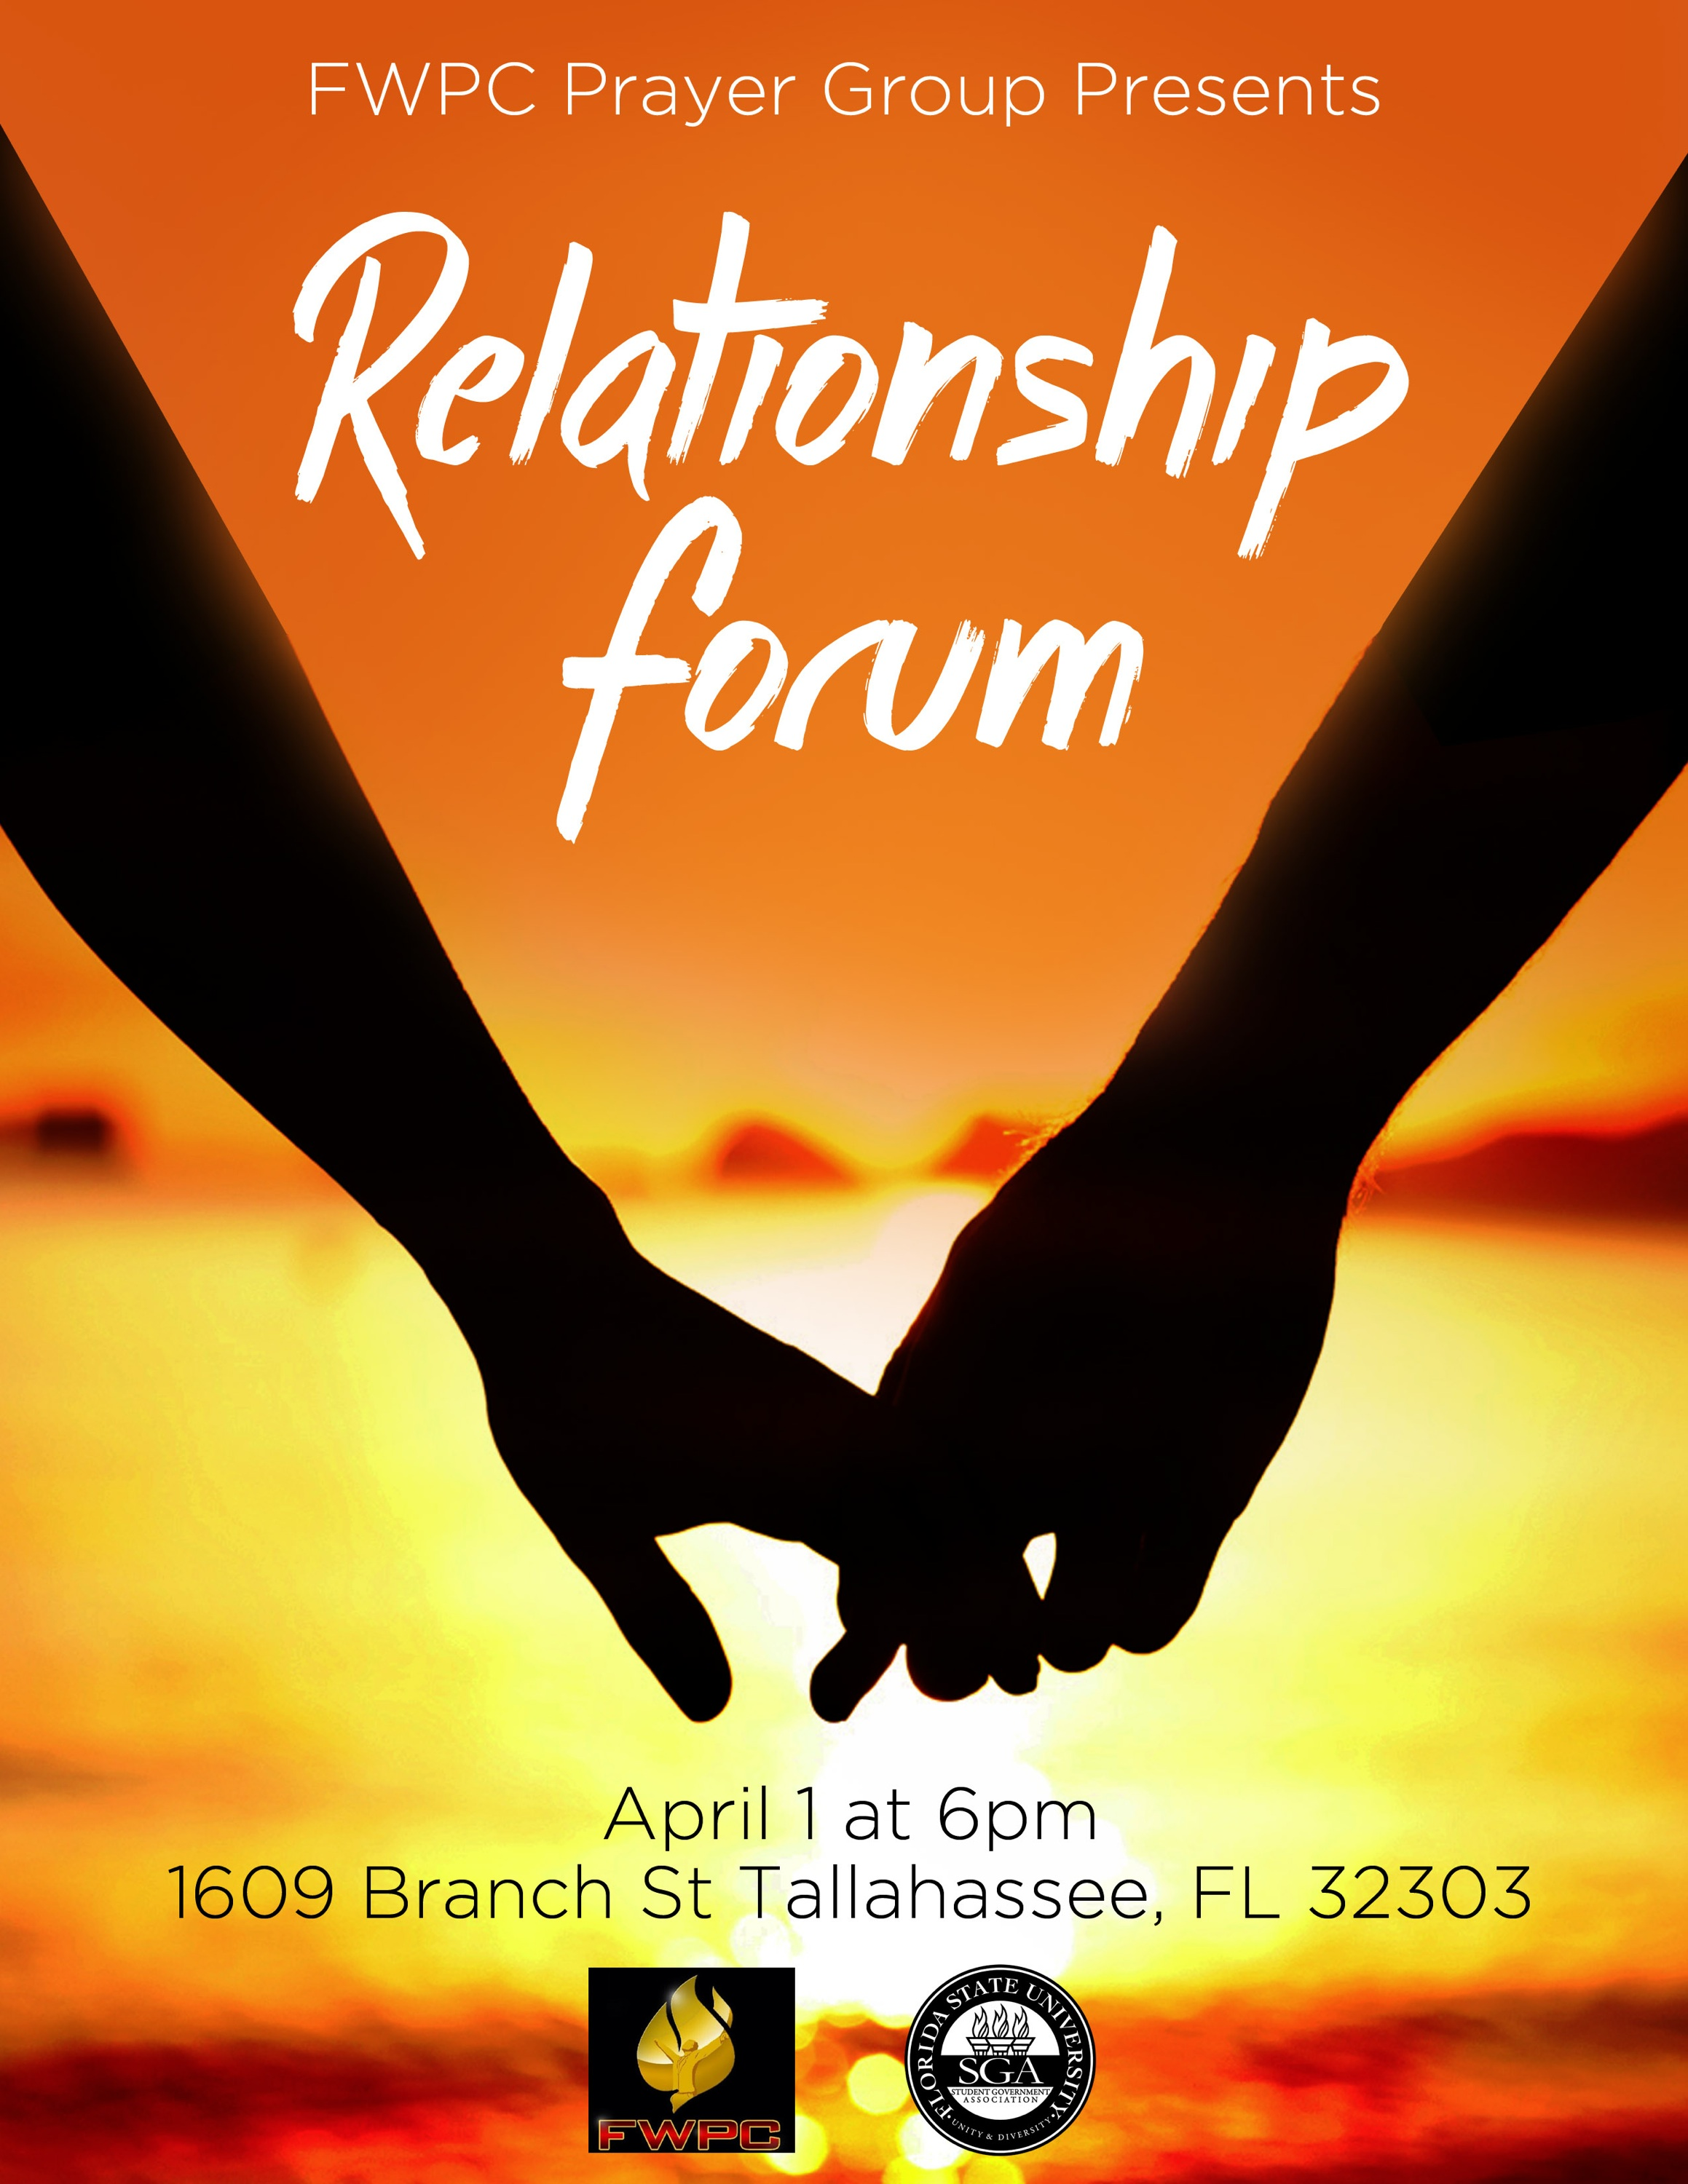 Relationshipforum